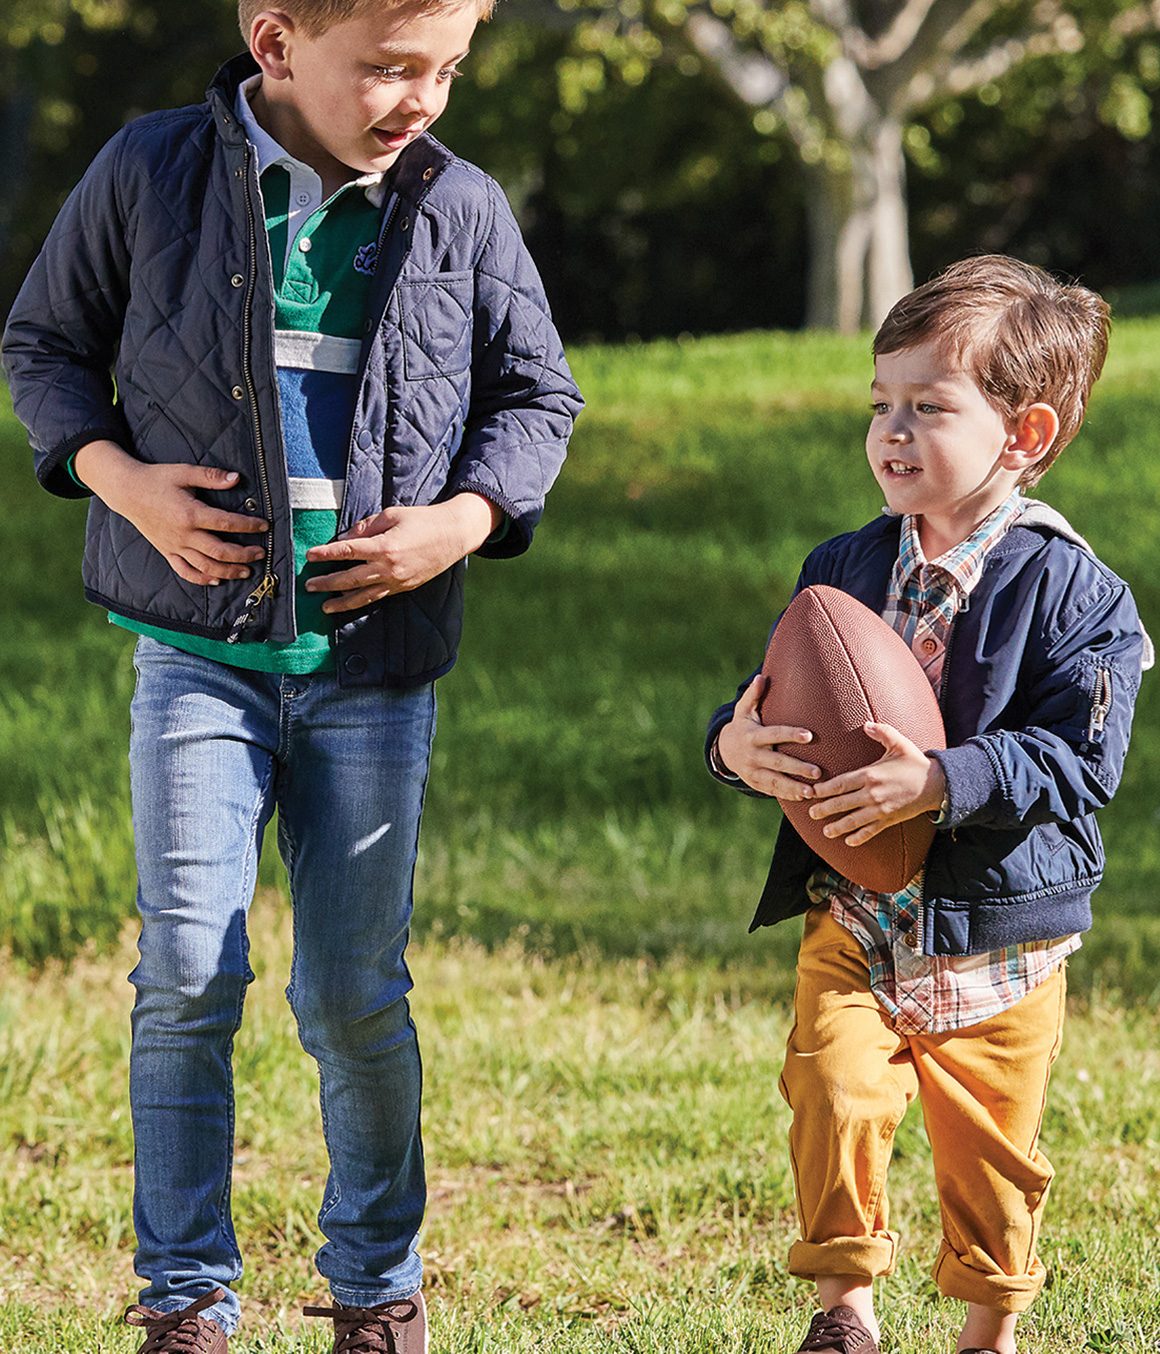 Two kids playing a ball.